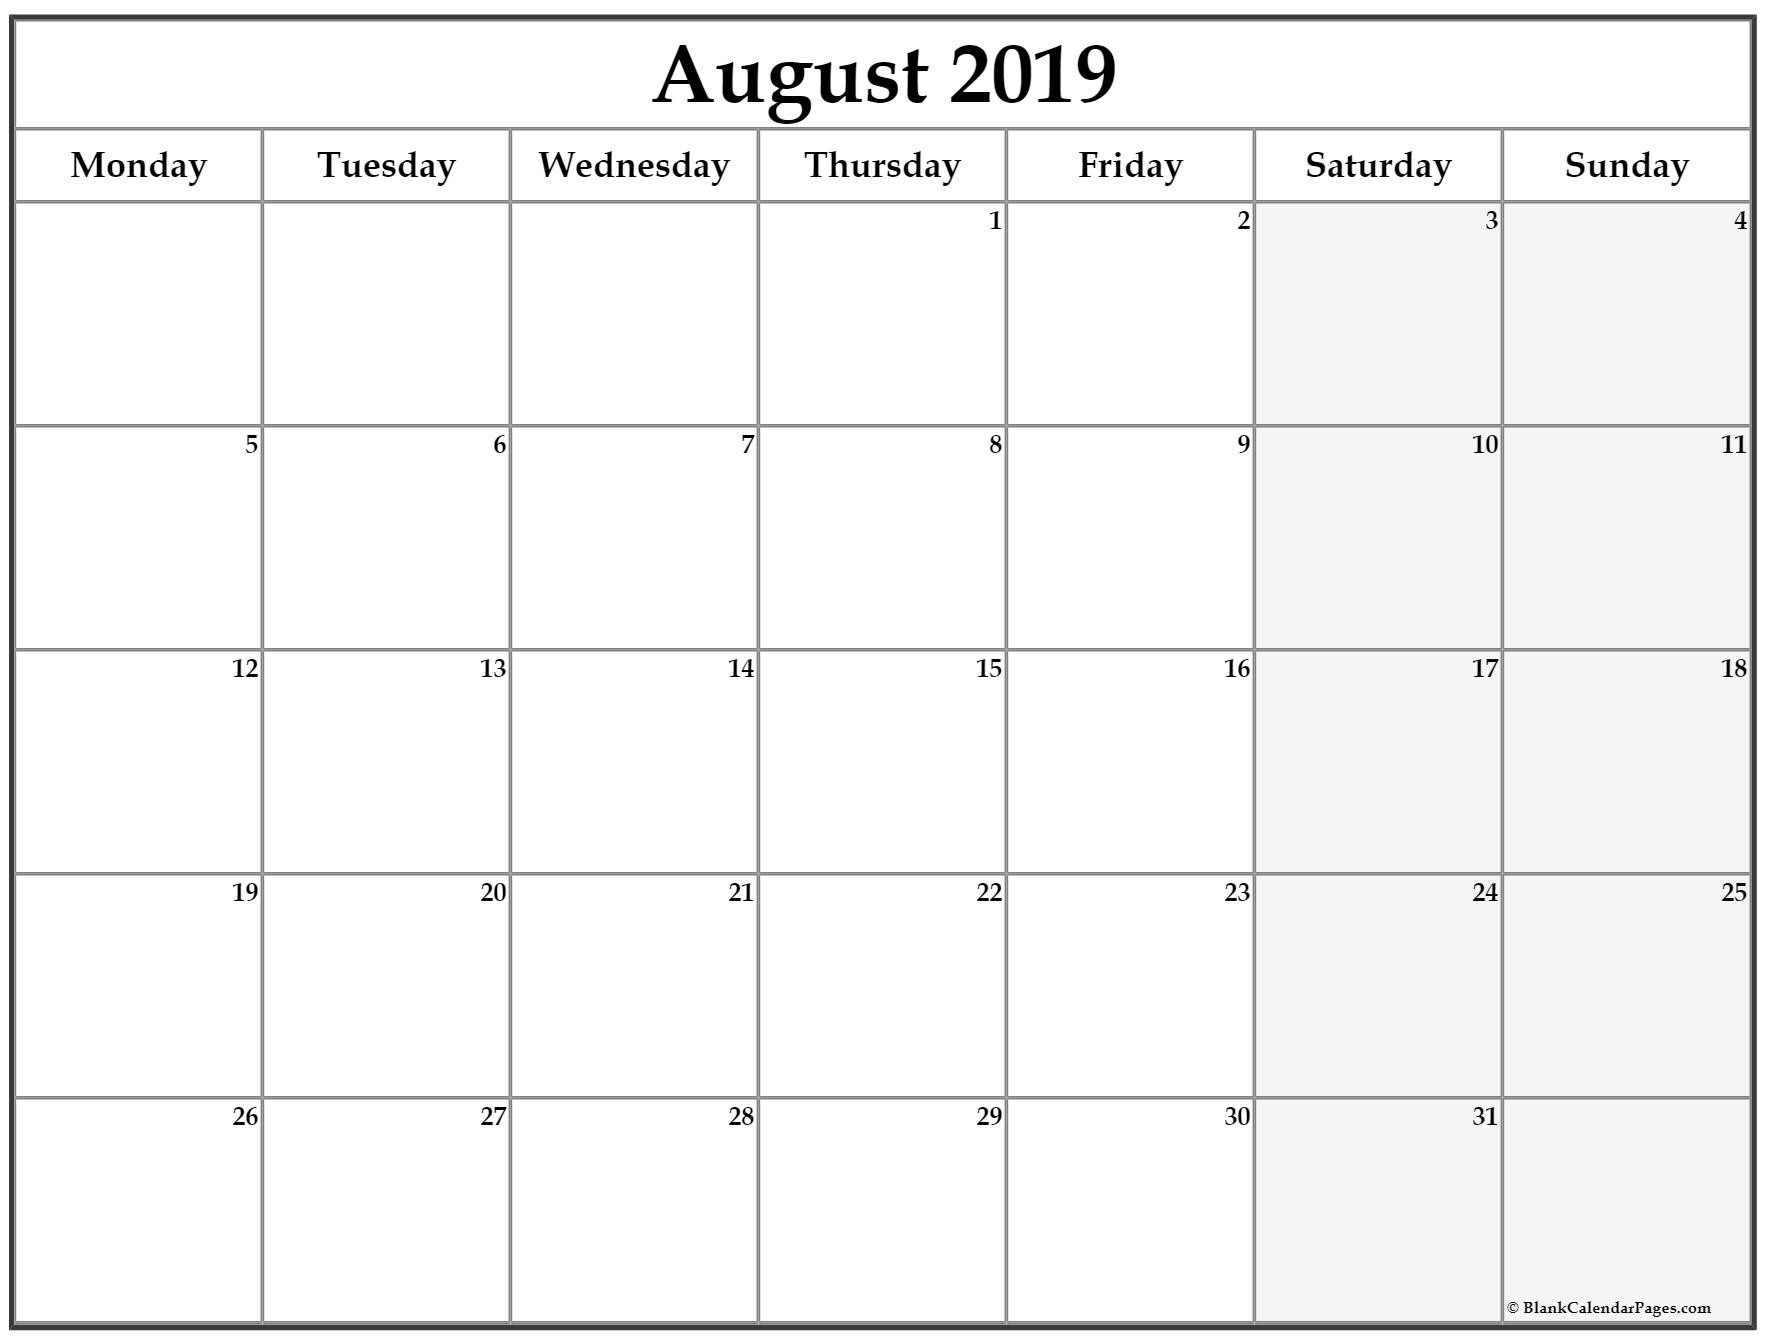 August 2019 Monday Calendar | Monday To Sunday-Monday To Sunday Monthly Planners